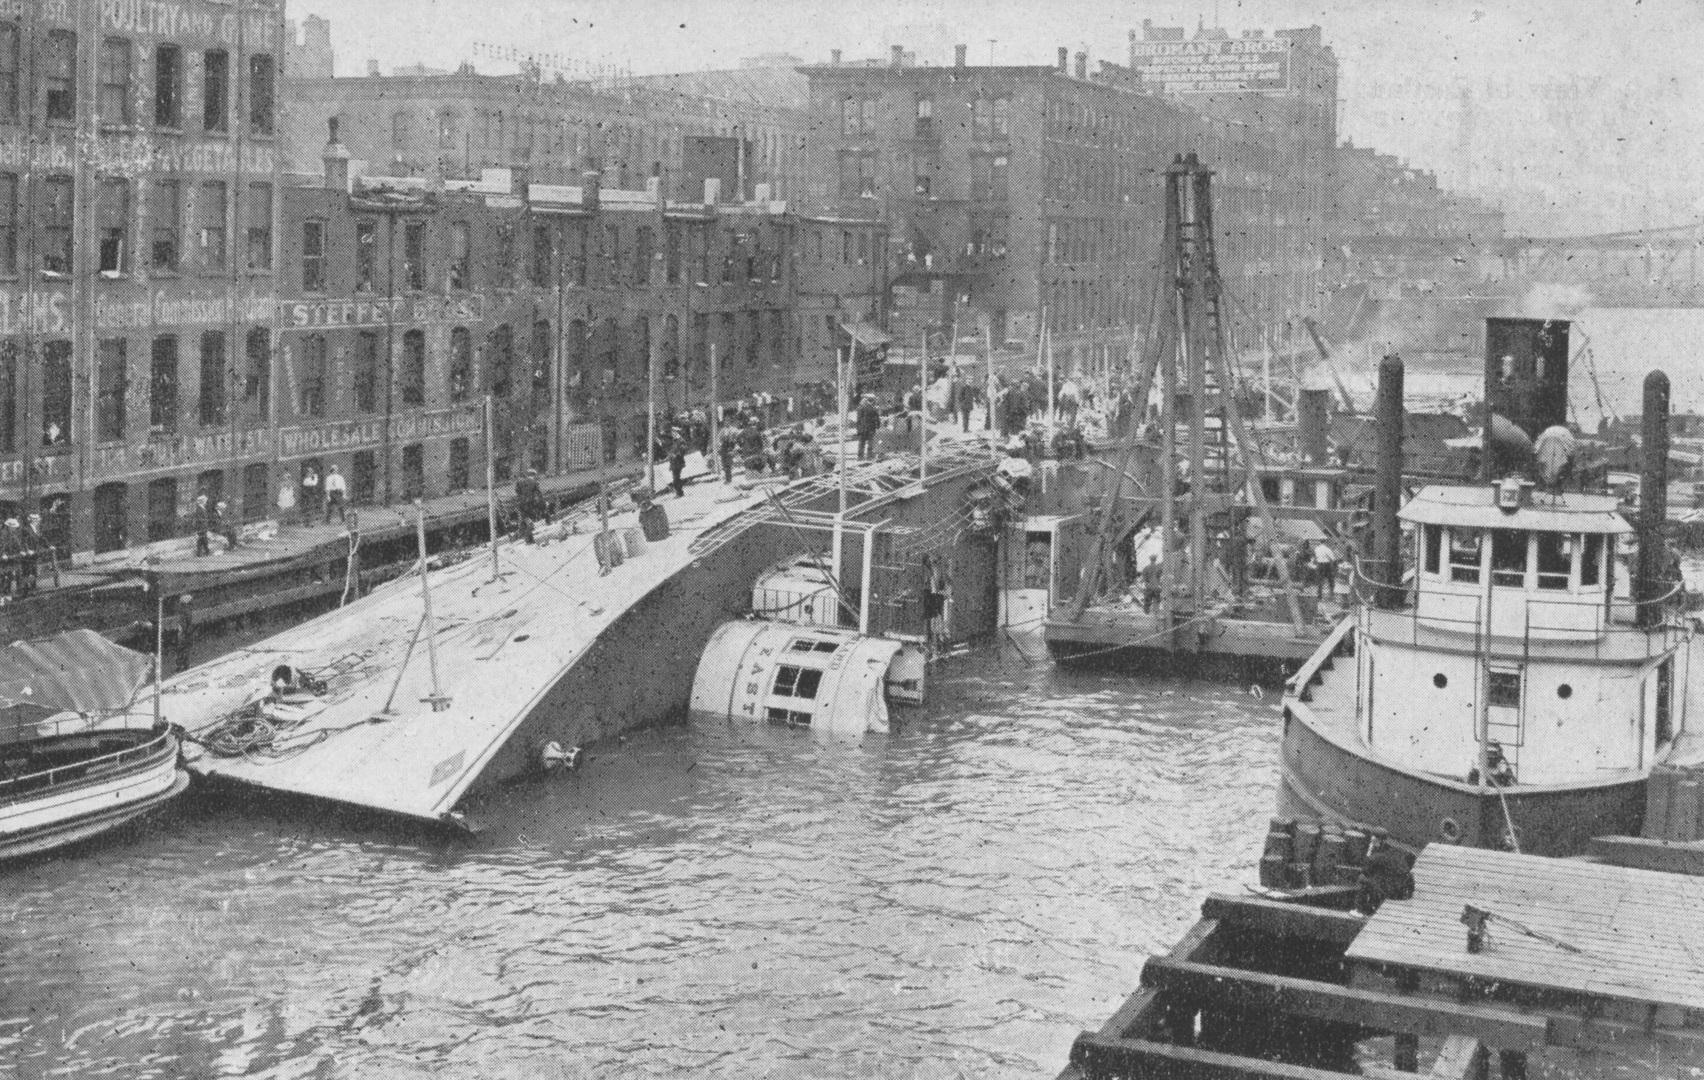 S.S. Eastland Disaster Location